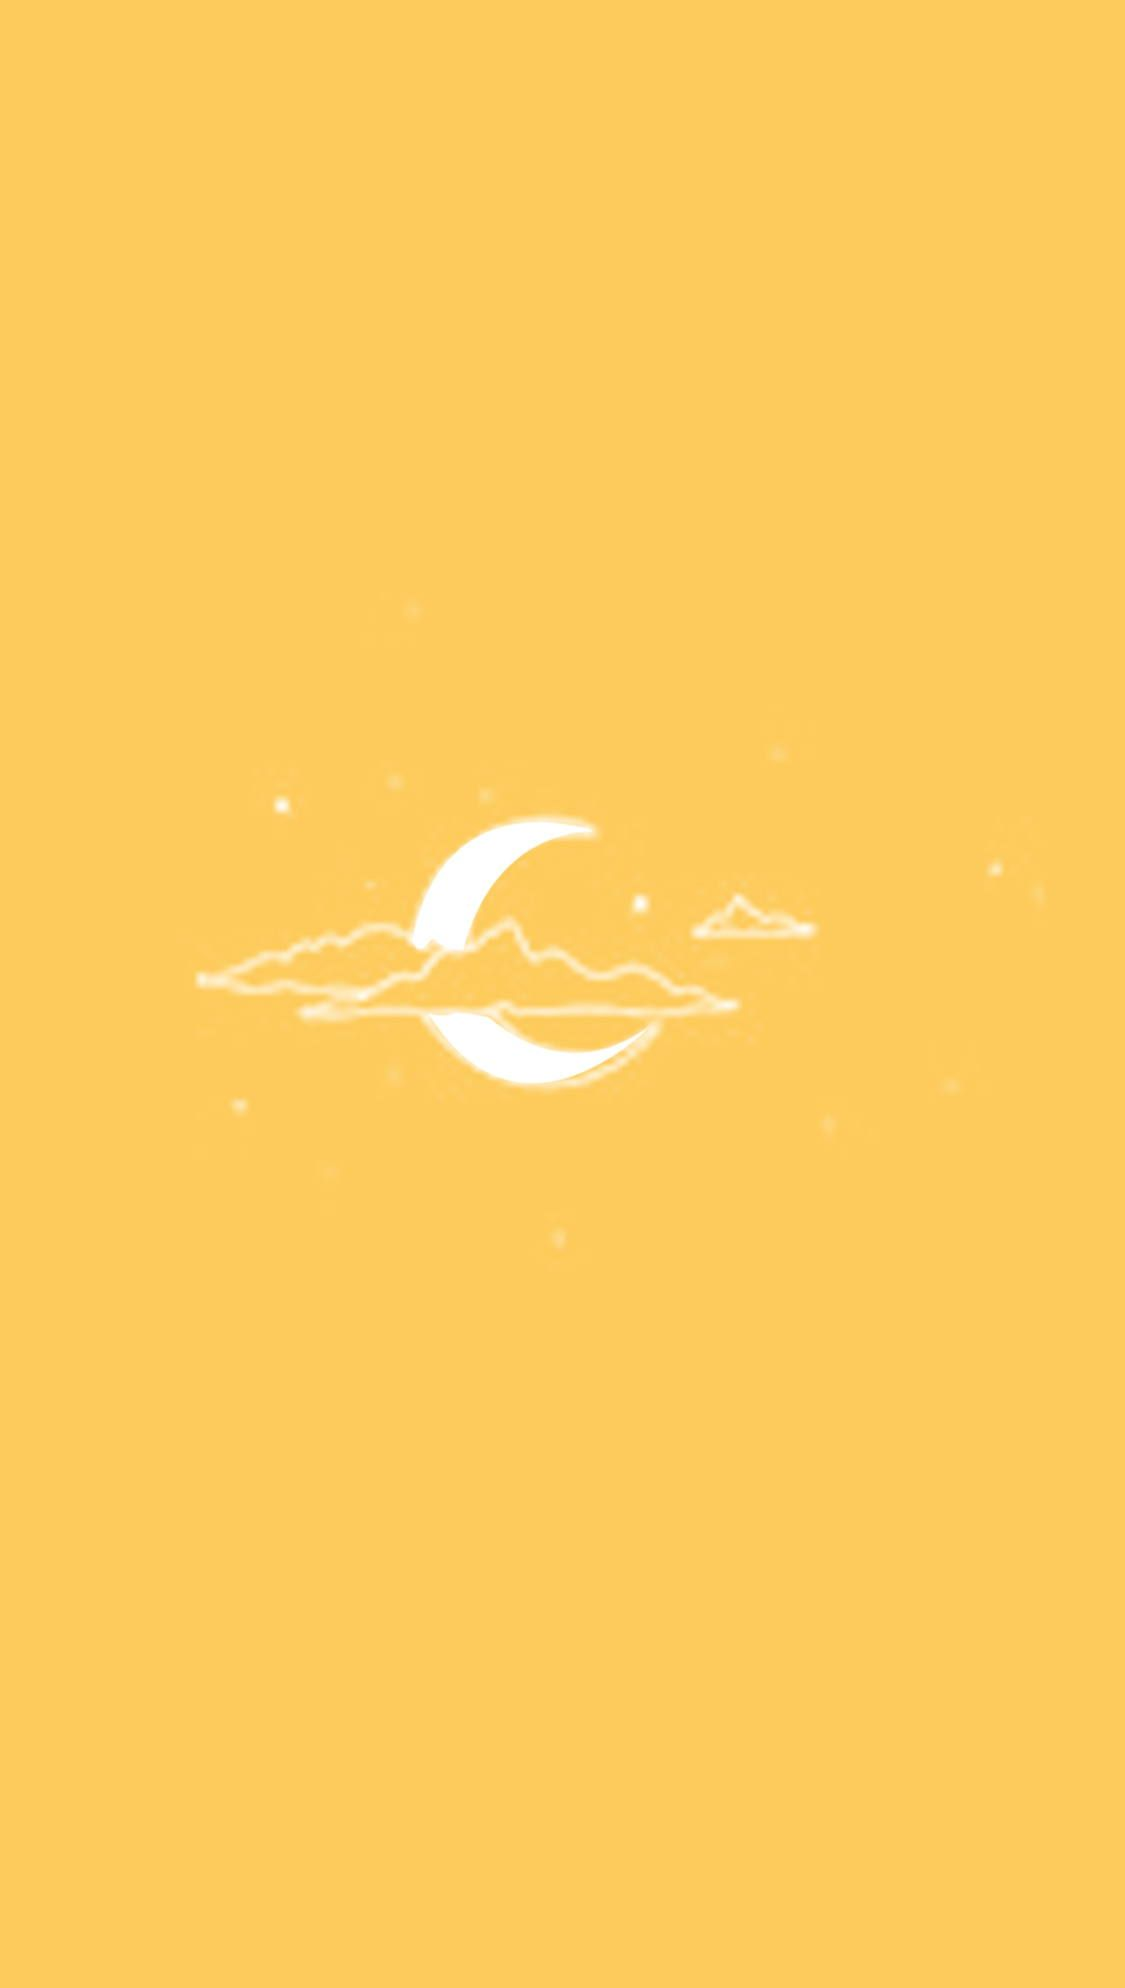 Soft Yellow Aesthetic Wallpapers - Wallpaper Cave